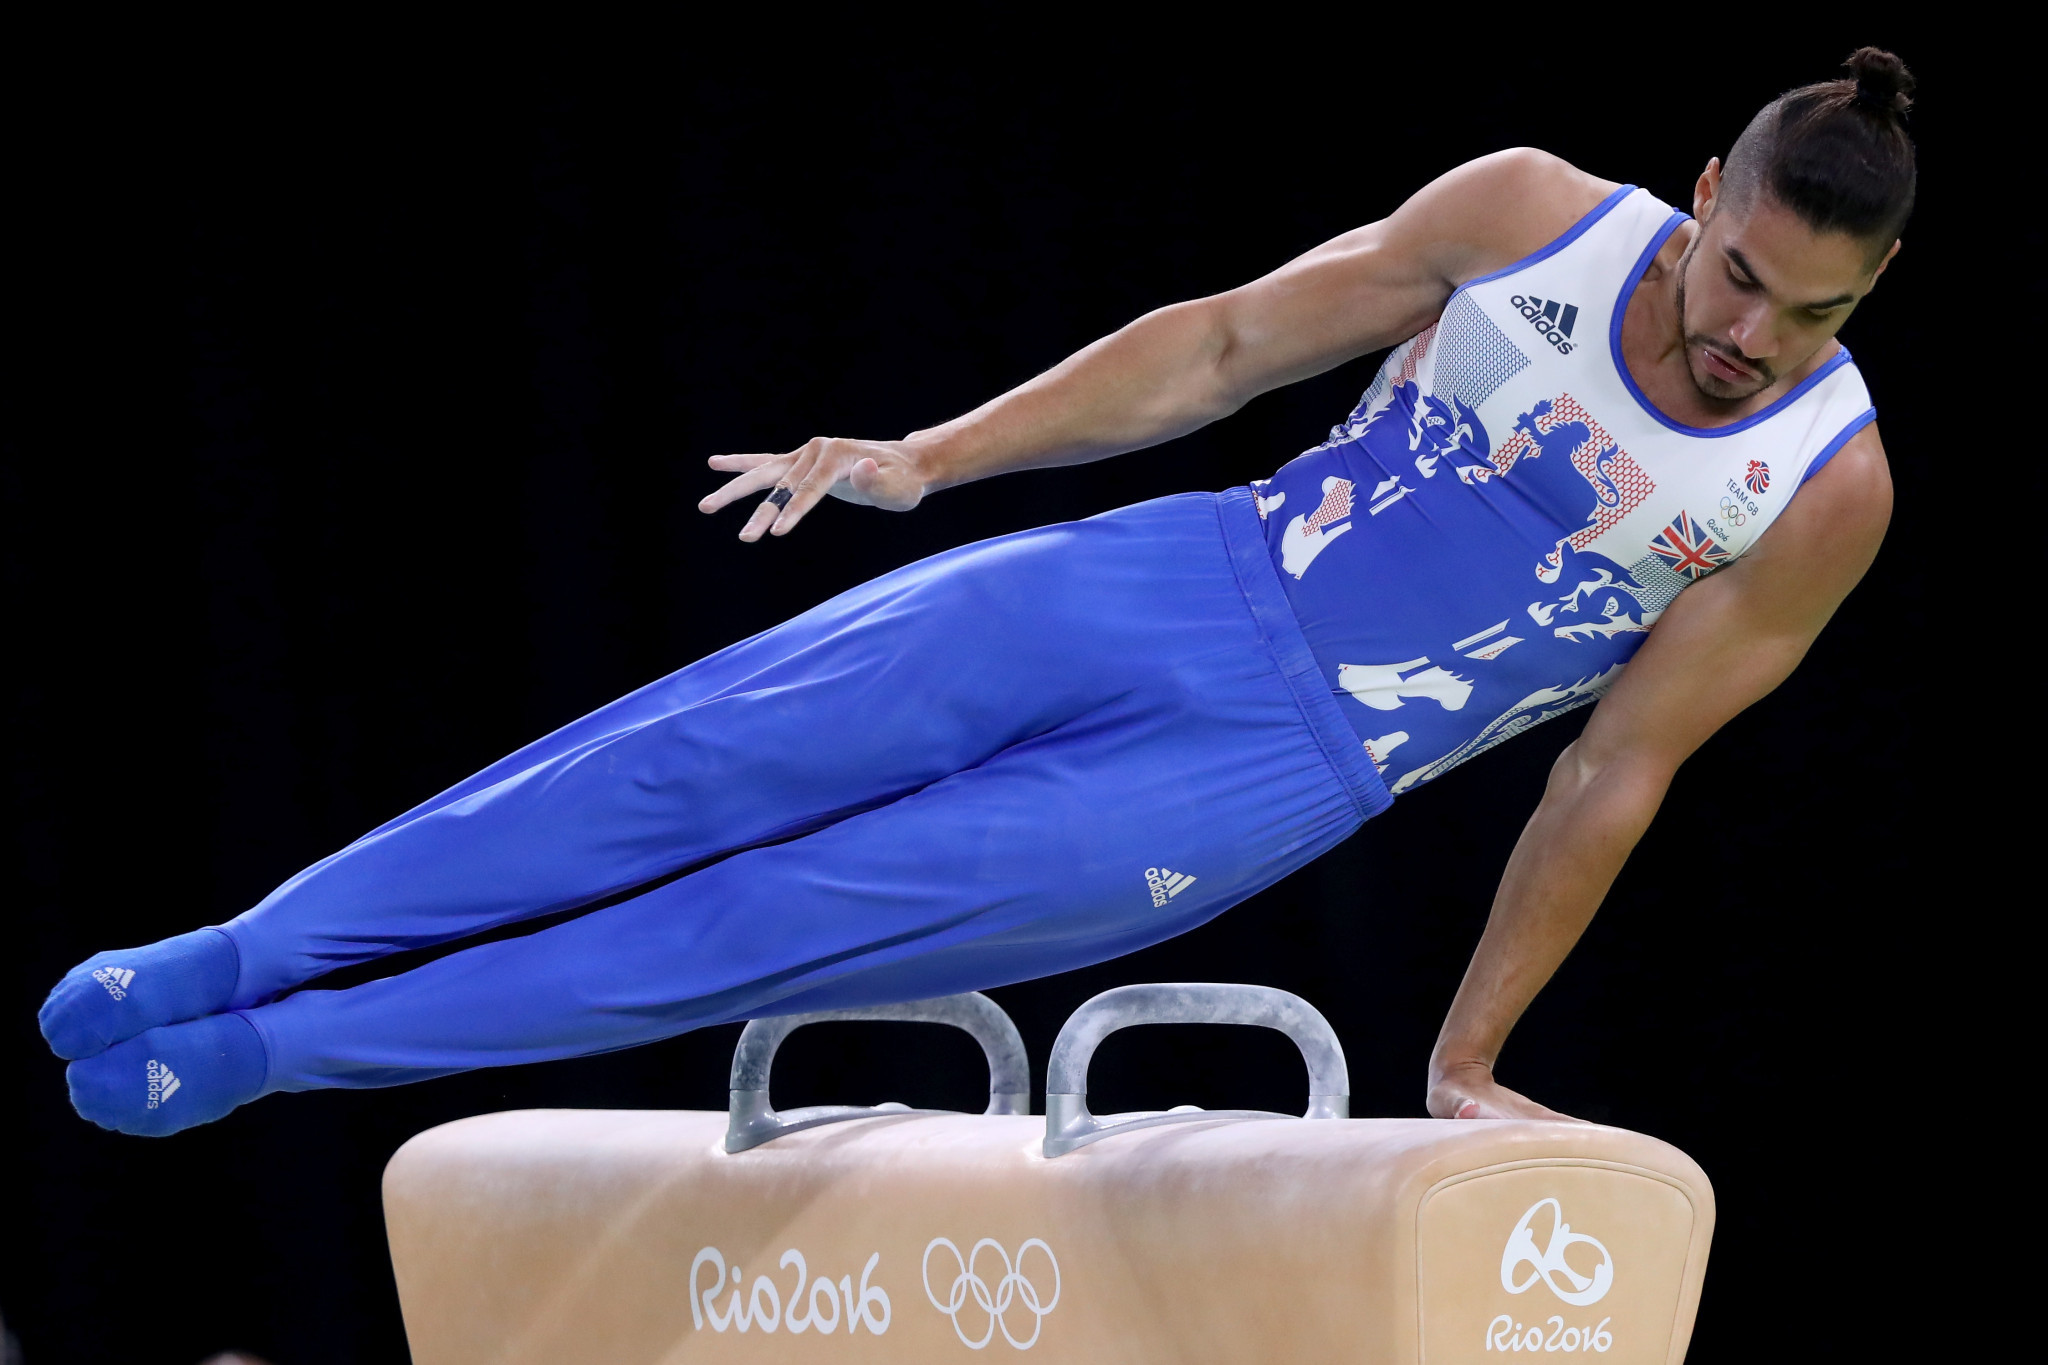 Four-time Olympic medallist Louis Smith claimed British Gymnastics changed after he won bronze at Beijing 2008 ©Getty Images